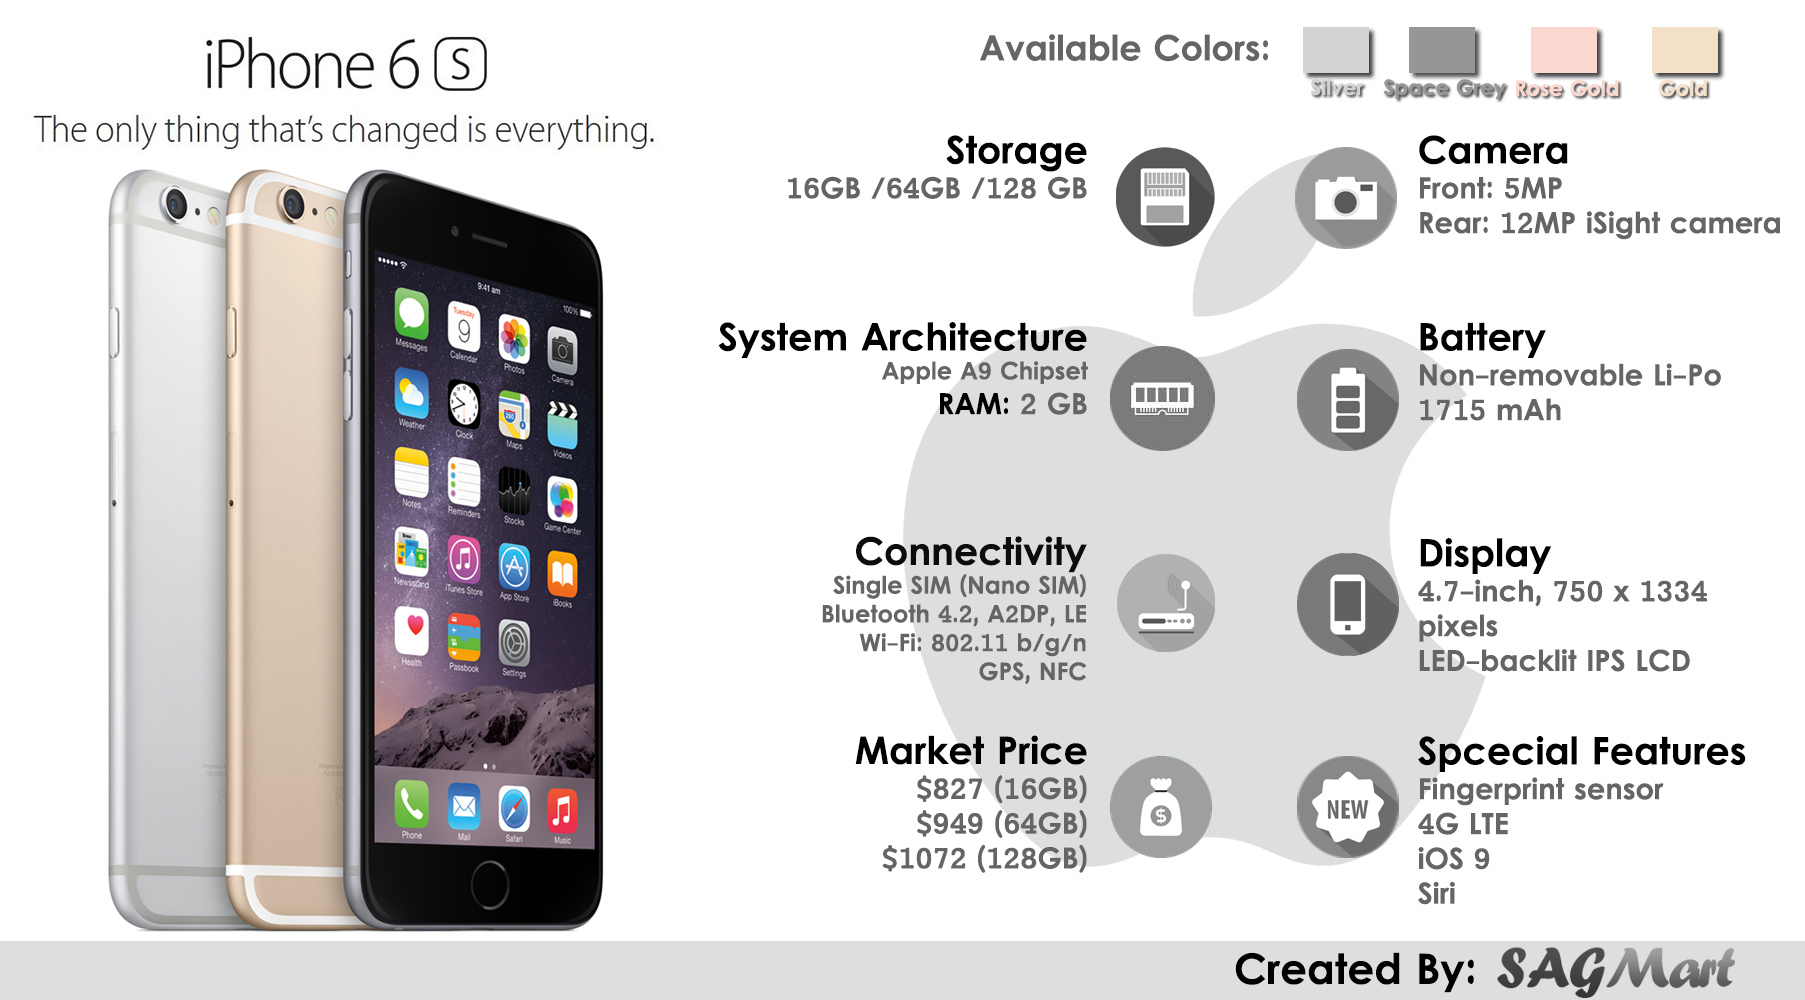 iphone 6s specification apple iphone 6s mobile specifications infographic sagmart 4832